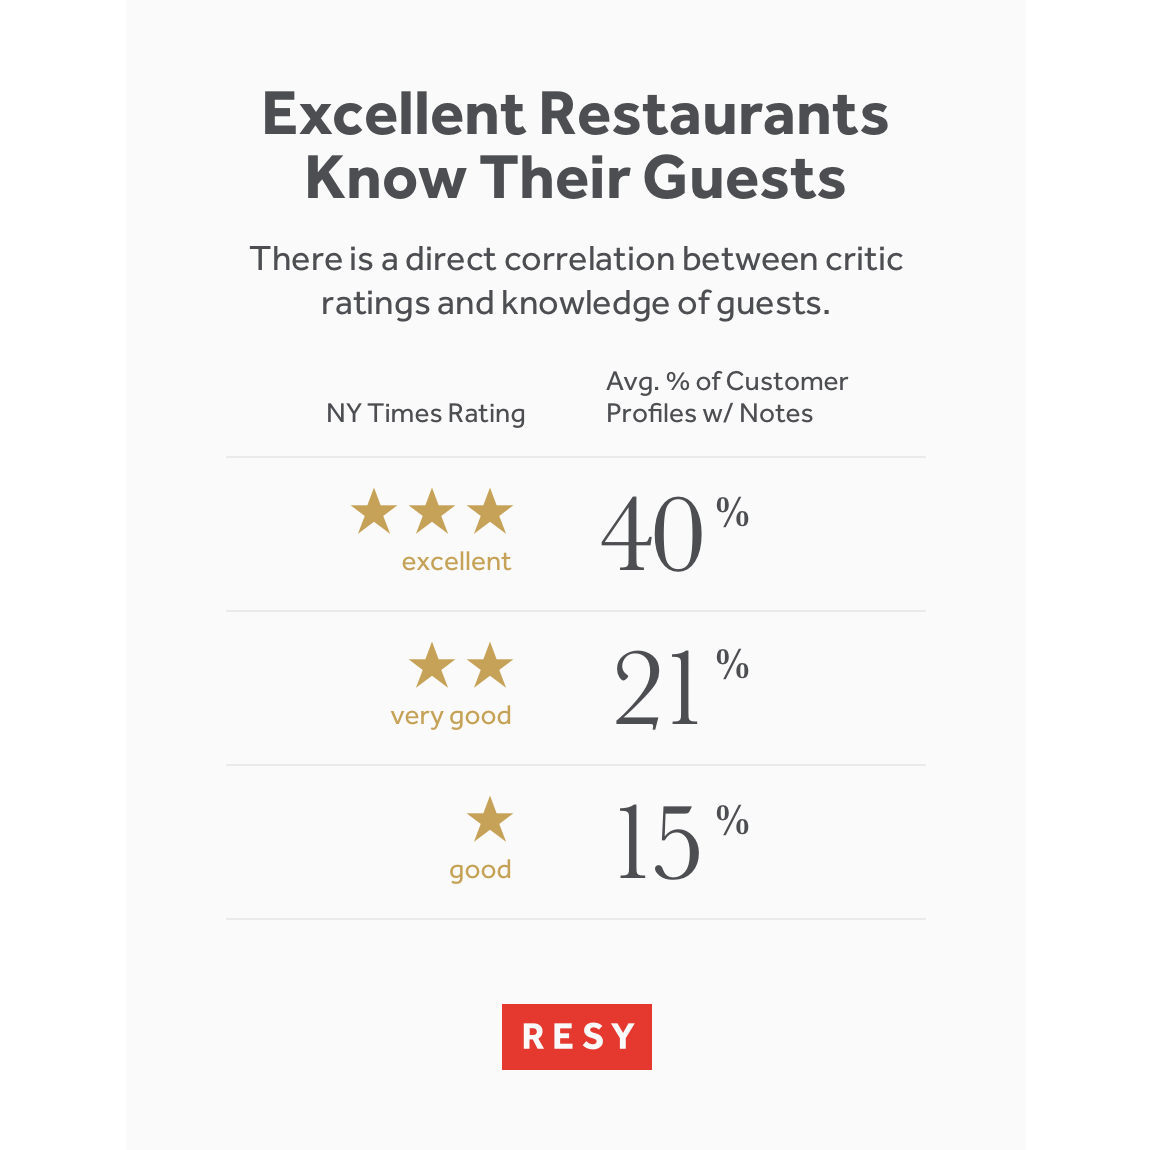 Of Restaurants That Have Been Reviewed By The New York Times And Awarded Three Stars 40 Their Guest Profiles Contain A Note